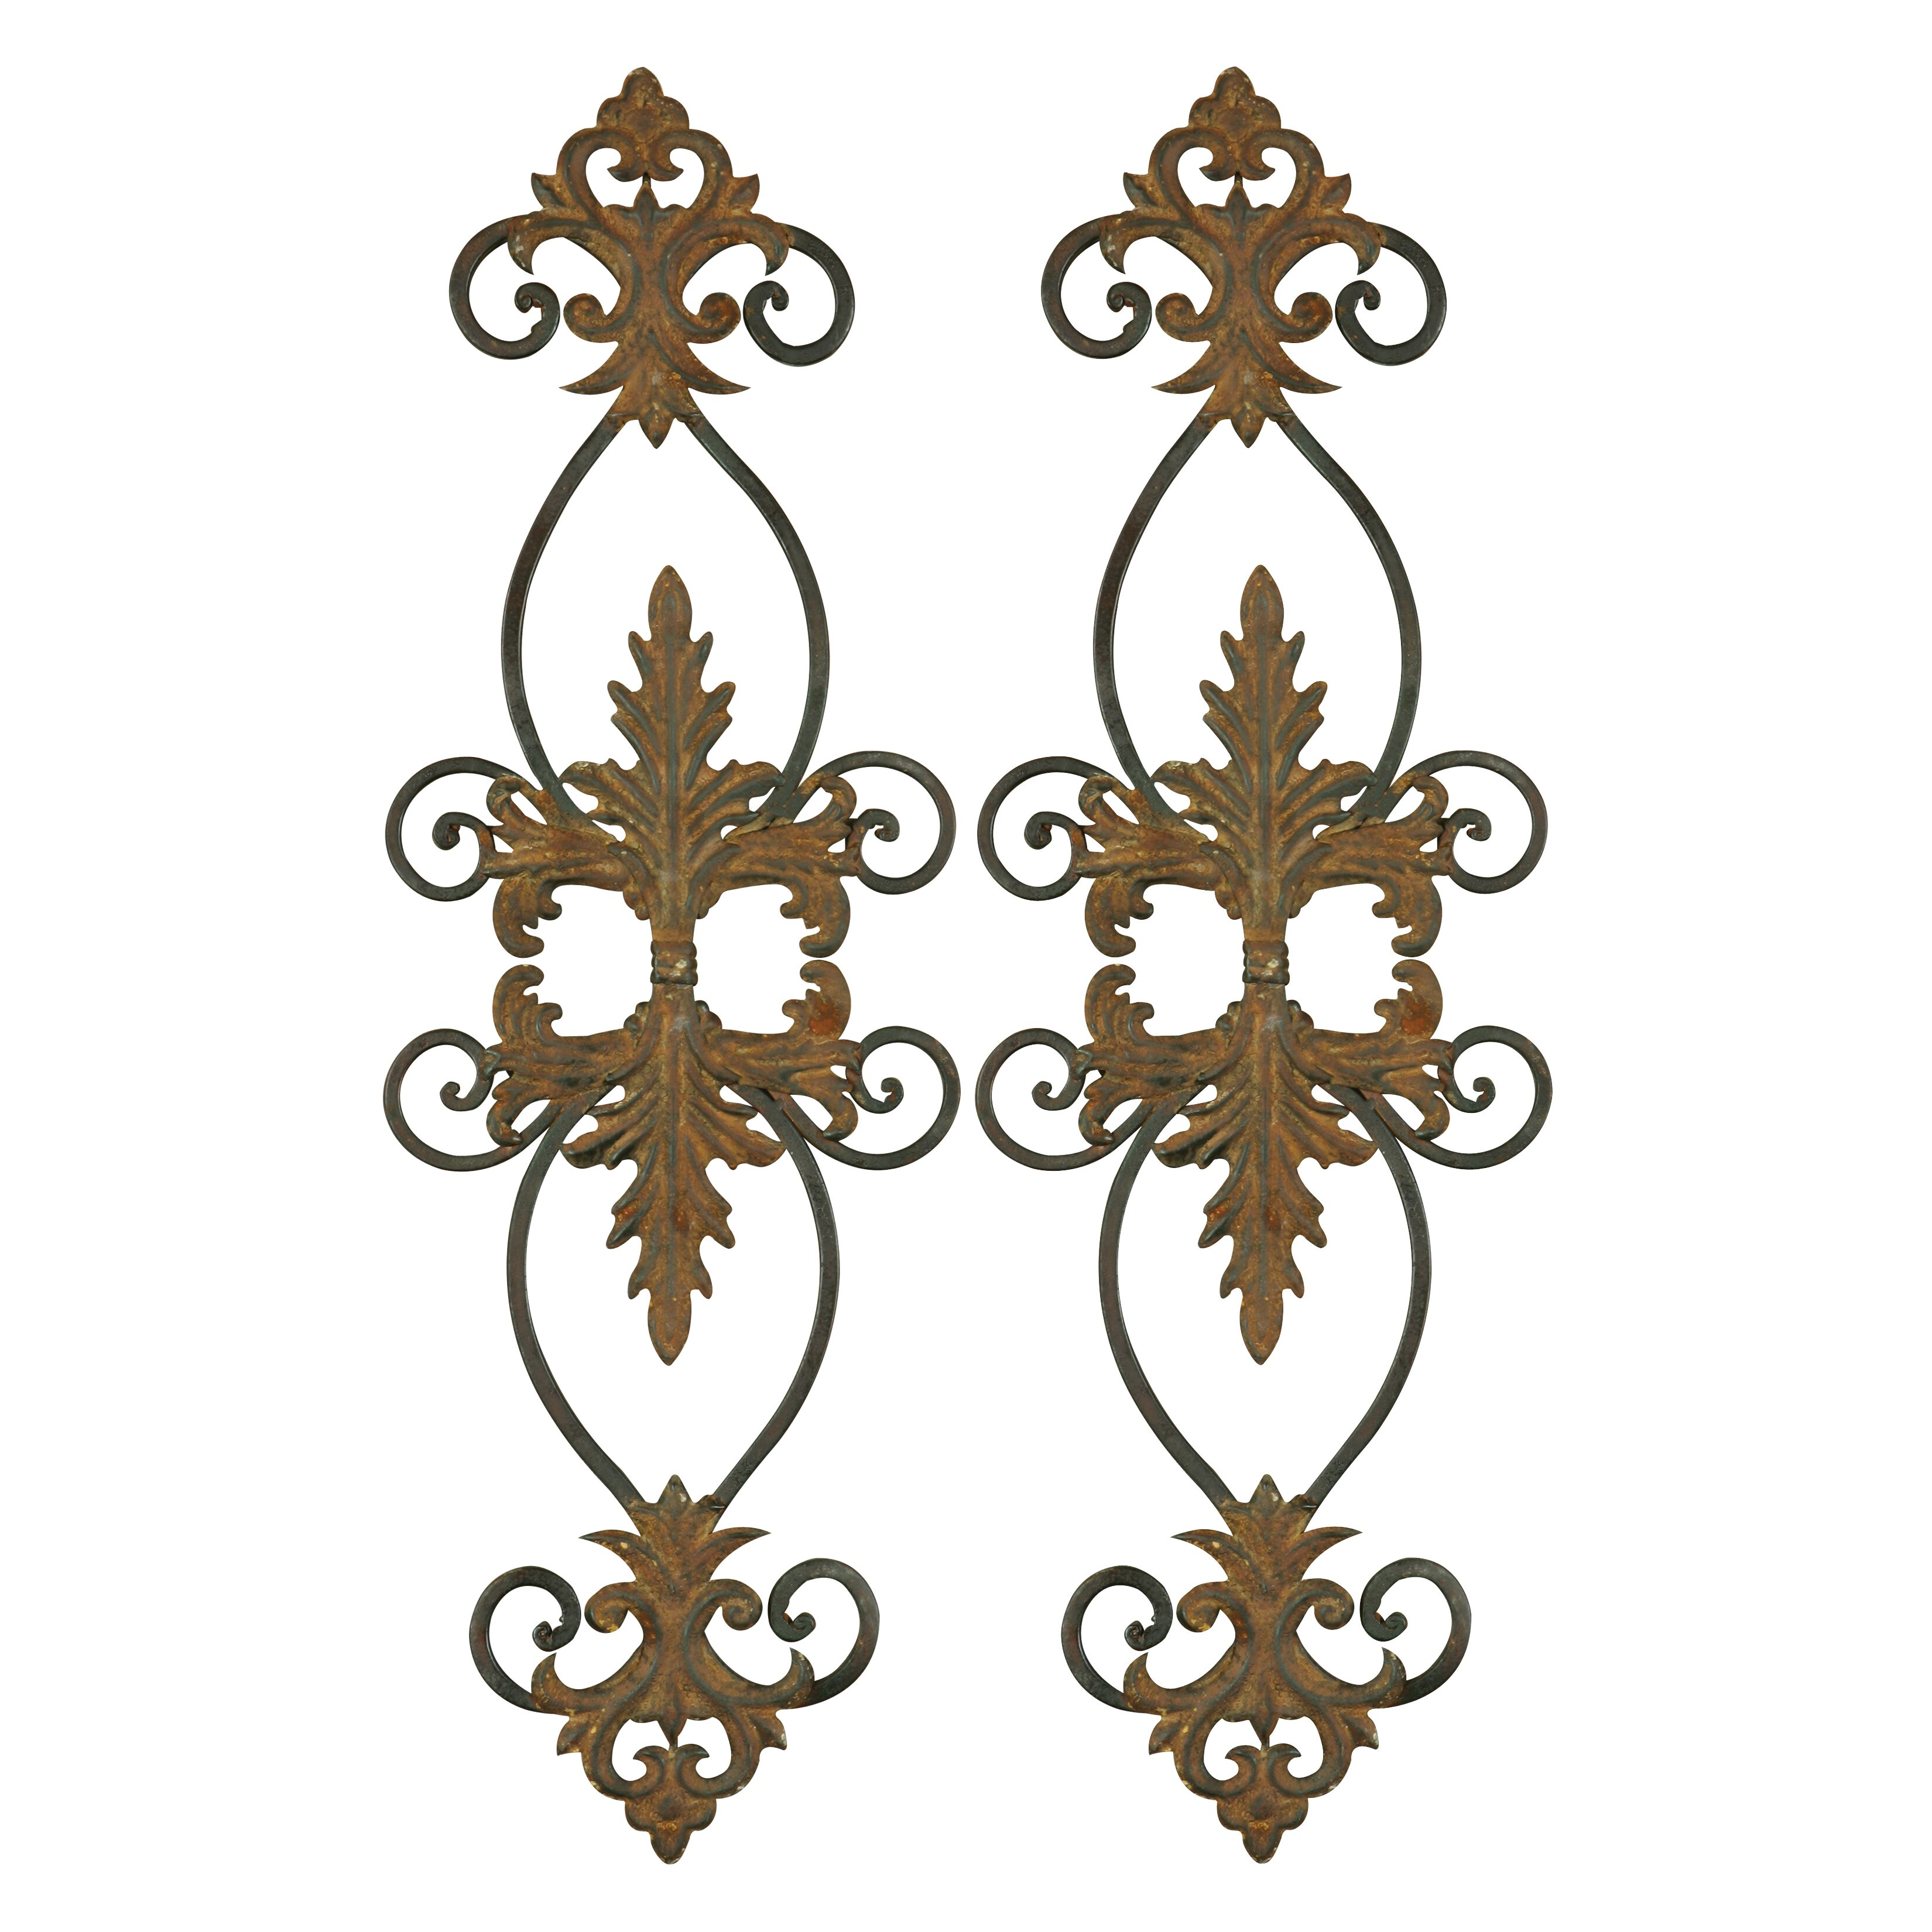 Uttermost metal wall decor images home wall decoration ideas decorative metal wall art 2 roselawnlutheran uttermost 2 piece lacole decorative wall du0026eacute amipublicfo images amipublicfo Gallery